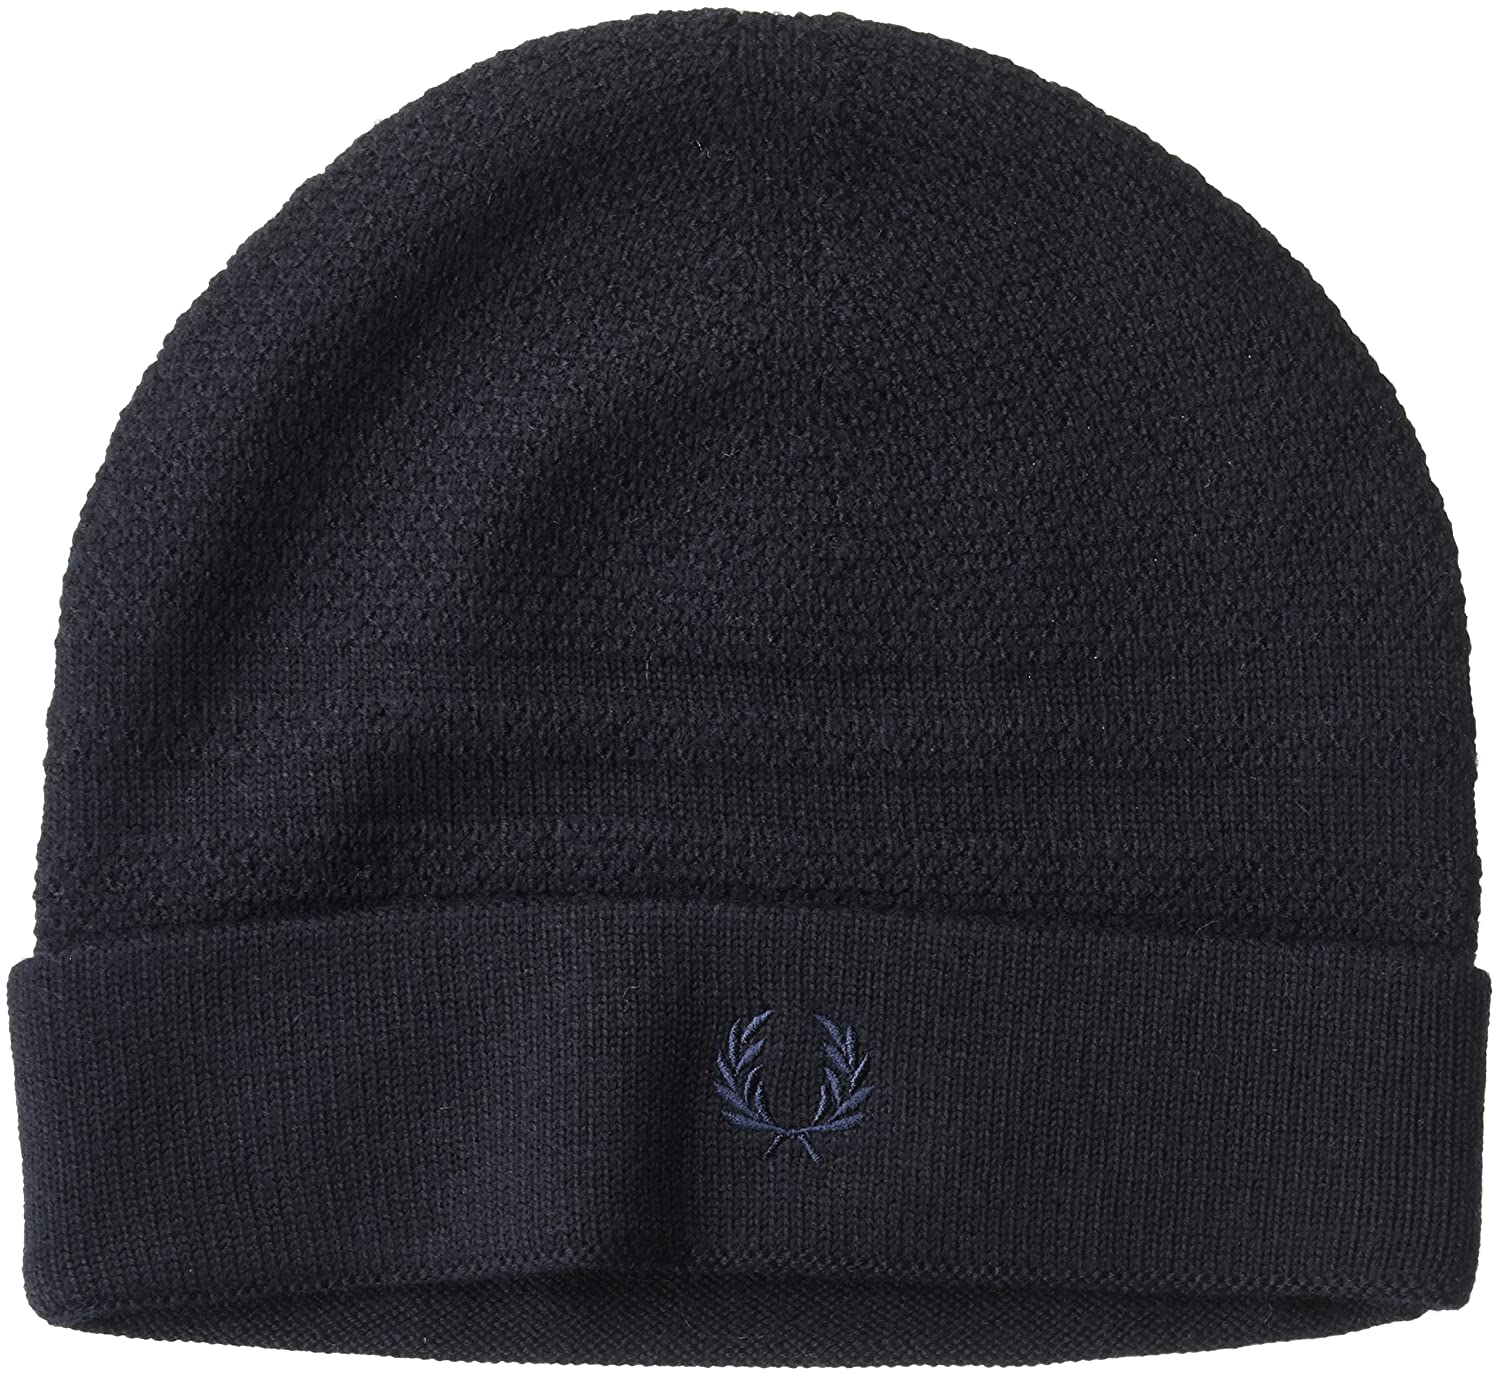 Fred Perry Men's Pique Tipped Merino Beanie Navy One Size C2103